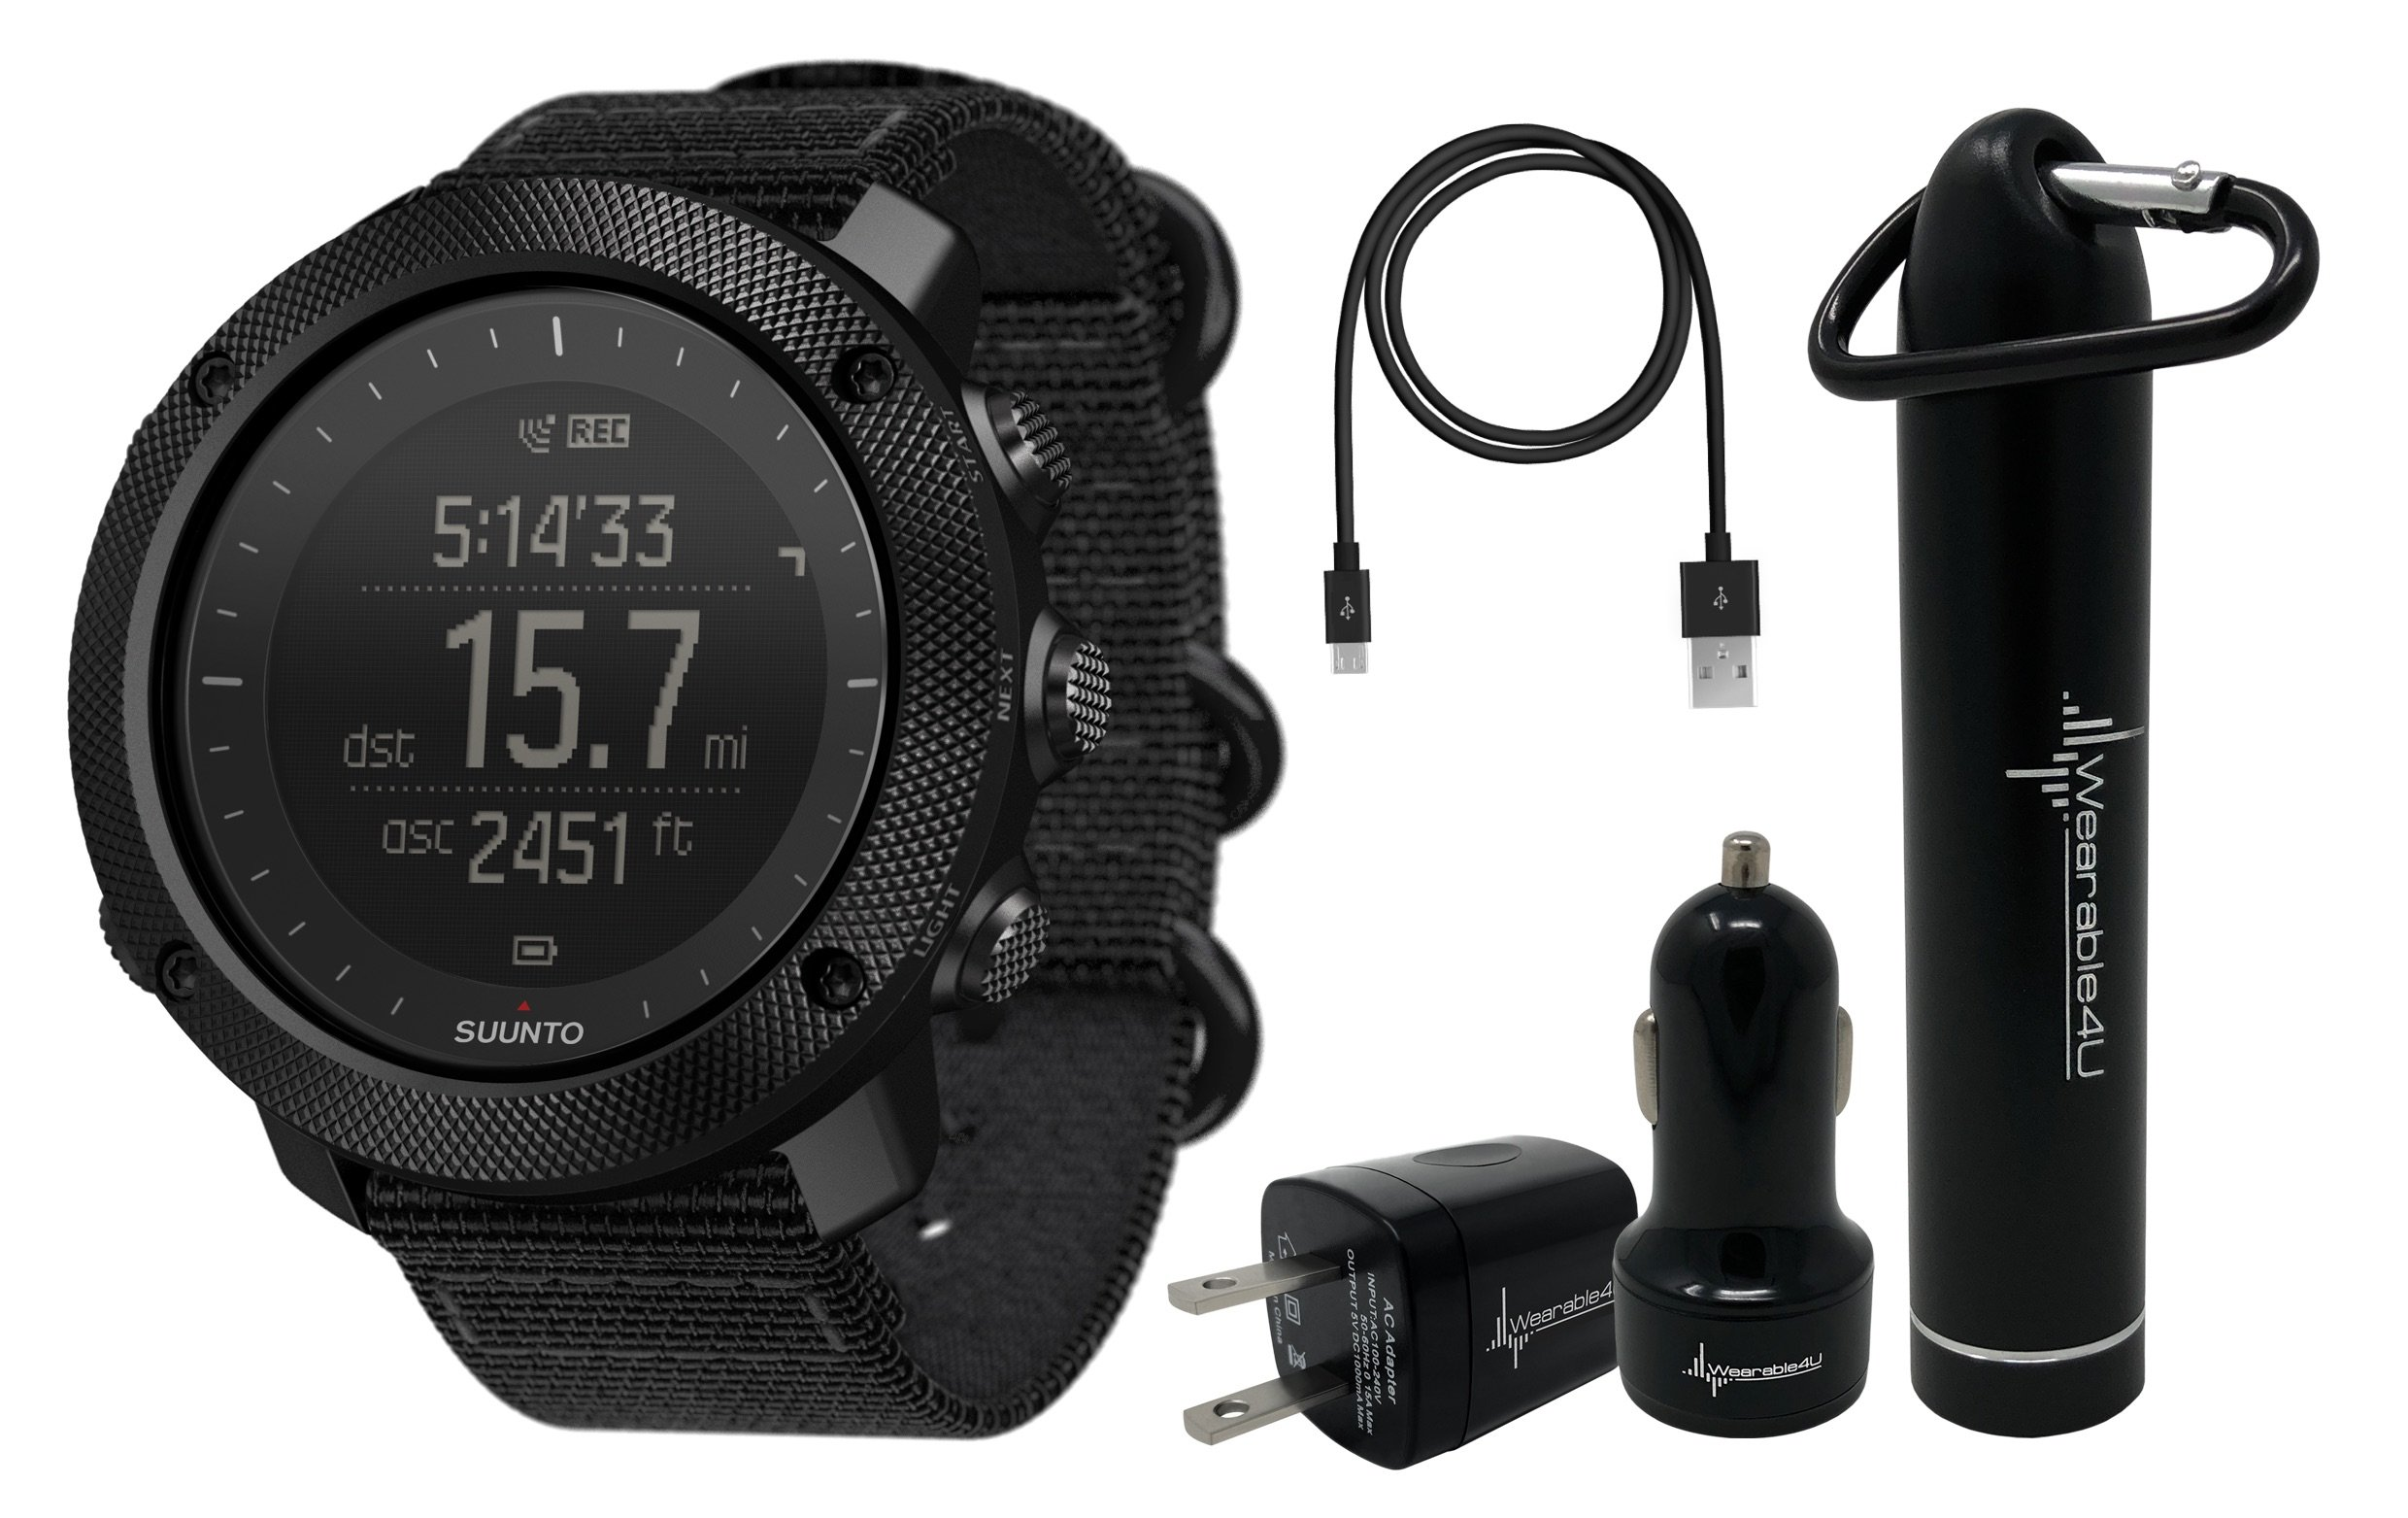 Suunto Traverse Alpha GPS/GLONASS Watch with Versatile Outdoor Functions for Fishing and Hunting and Wearable4U Ultimate Power Pack Bundle (Stealth)